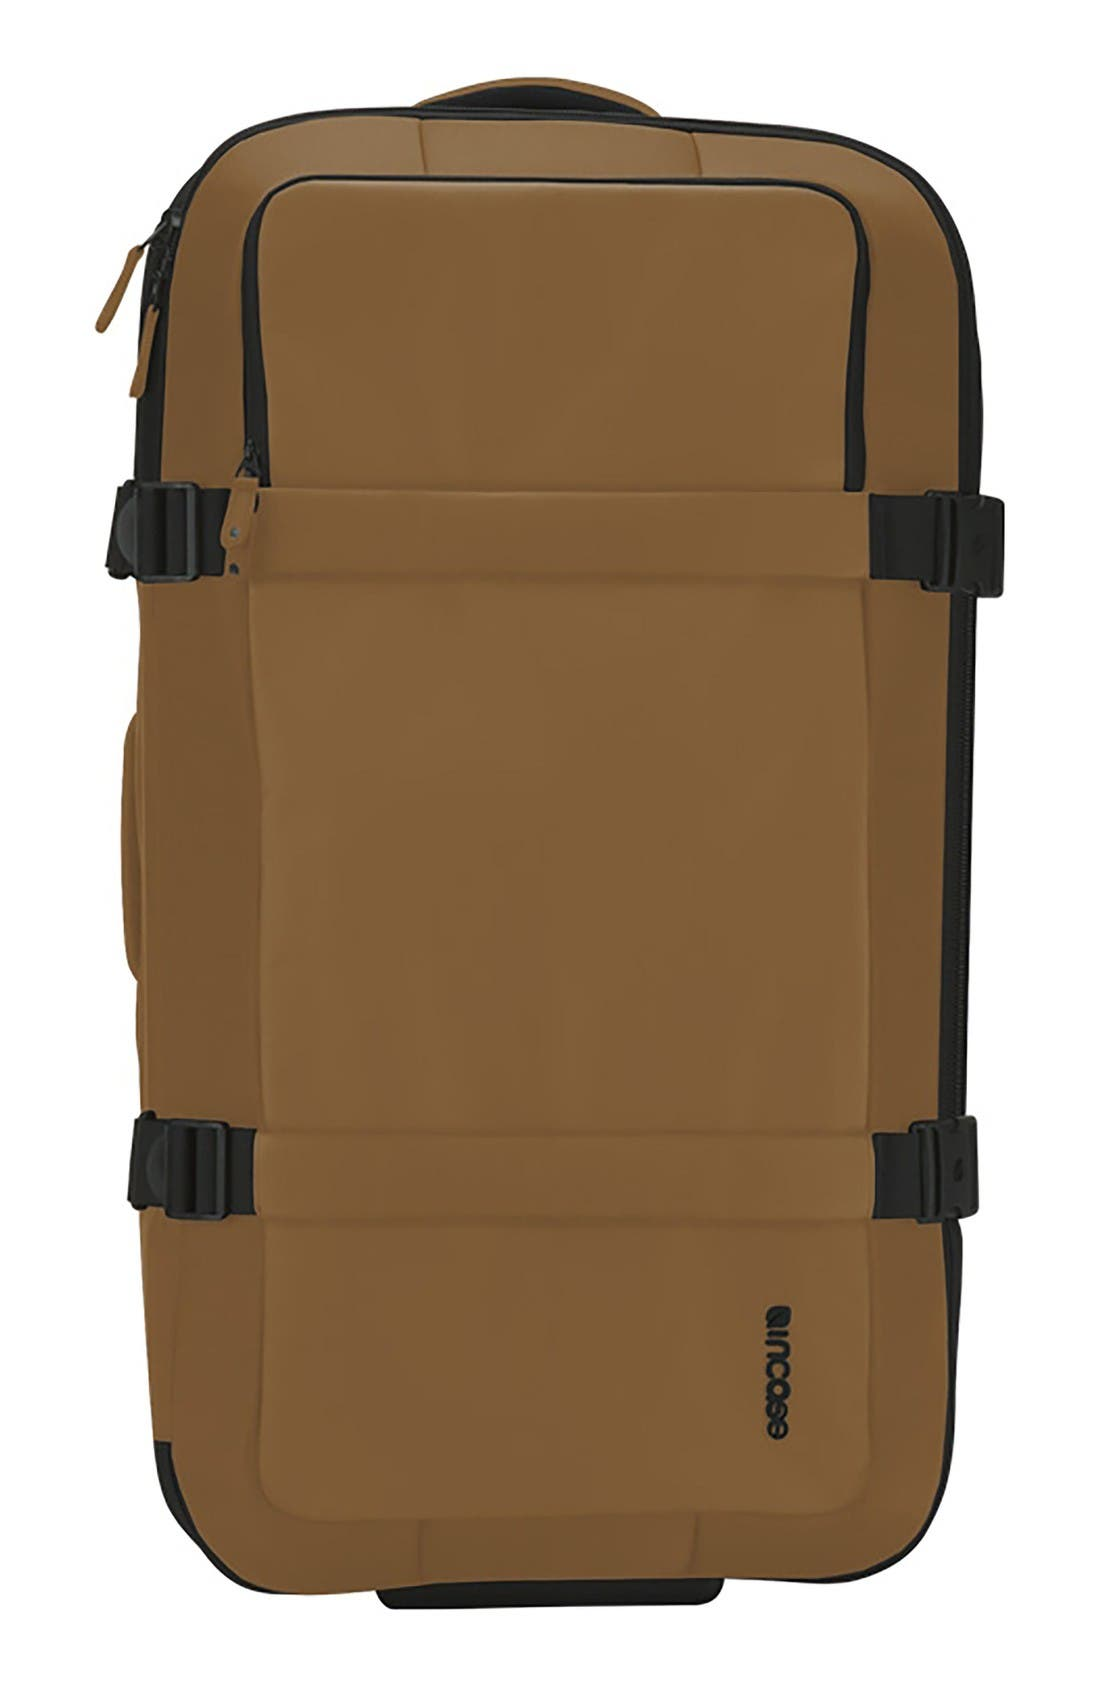 TRACTO 30-Inch Wheeled Duffel Bag,                             Main thumbnail 1, color,                             Bronze